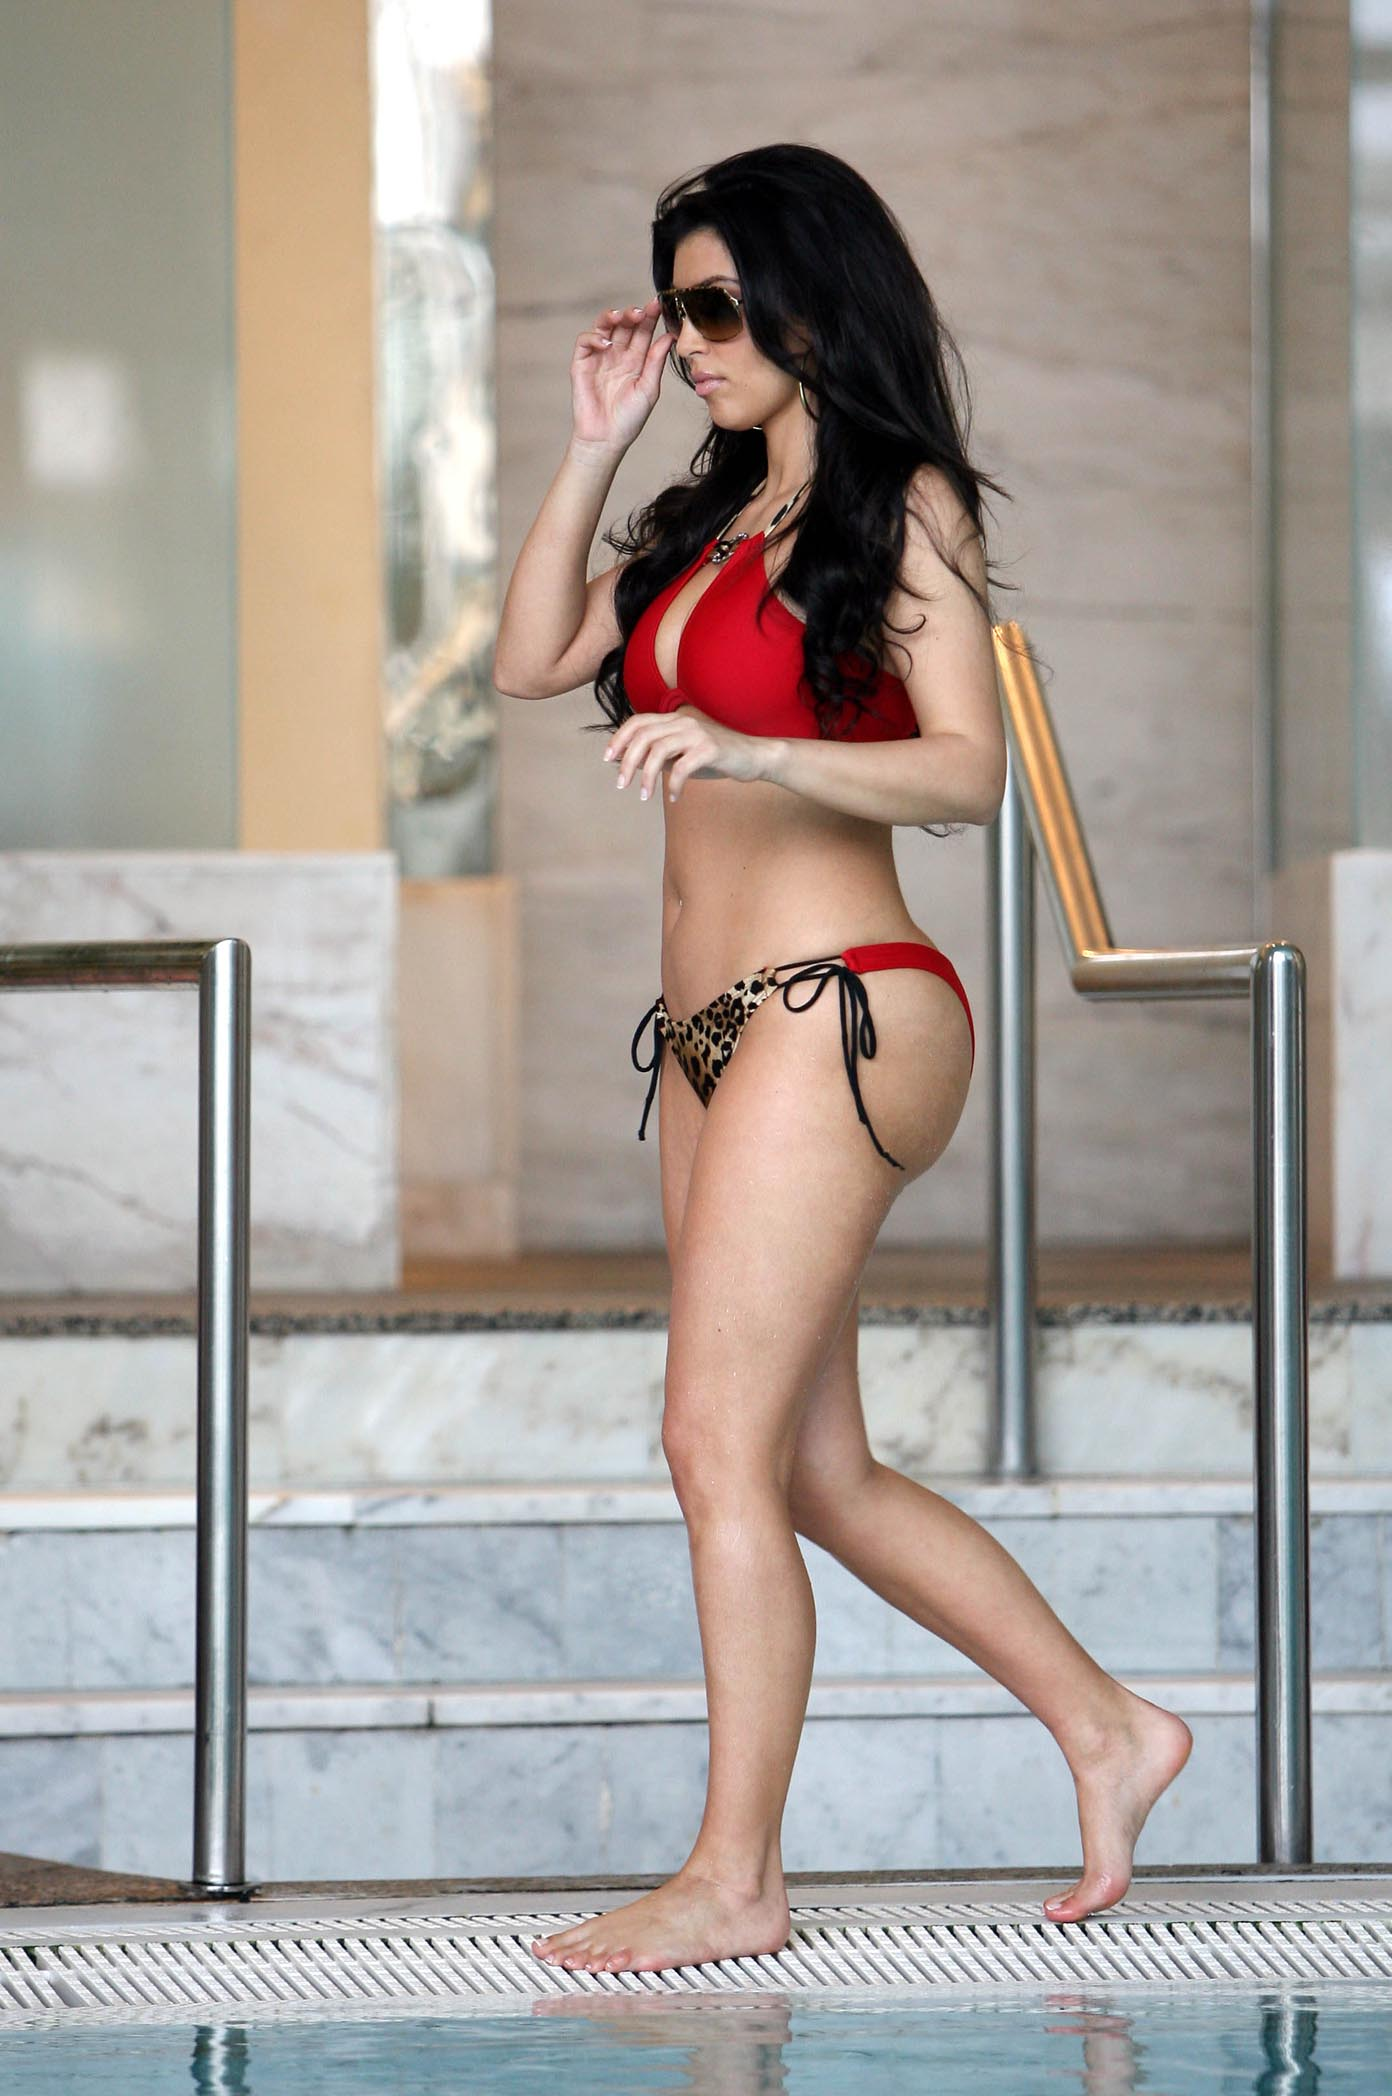 June 12, 2008: Kim Kardashian and sister Kourtney Kardashian (not pictured) show off their bikini bods as they lounge by the pool at the Hotel Hermitage in Monaco. Credit: Jae Donnelly/INFphoto.com Ref.: infusny-101/usla-102